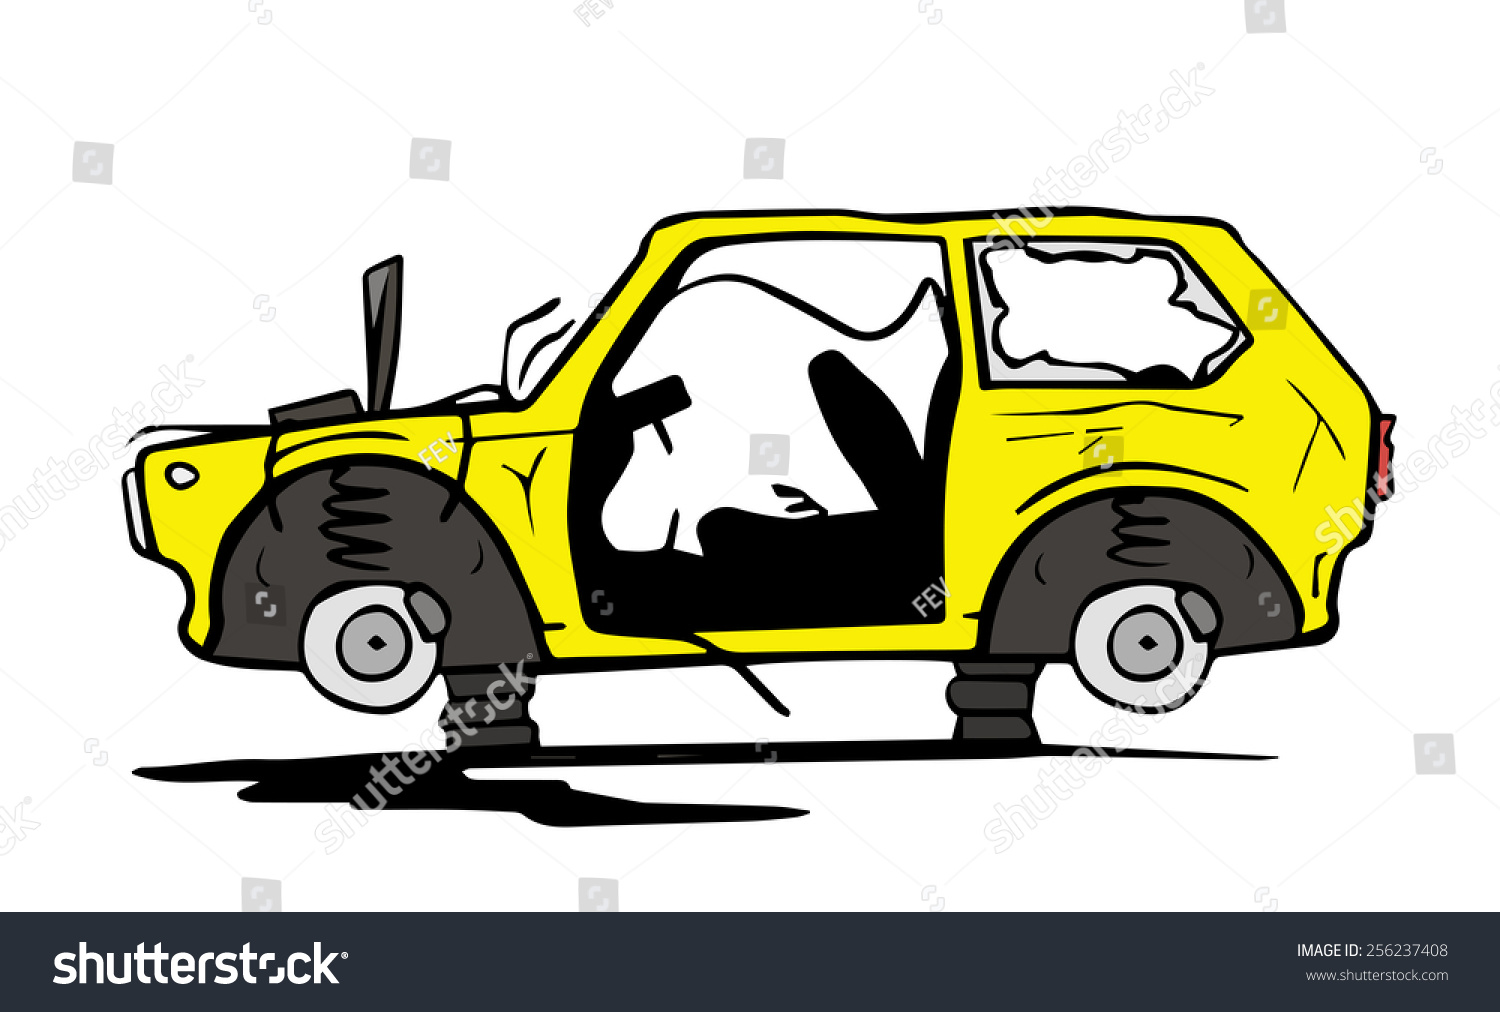 Abandoned Car Stock Vector 256237408.